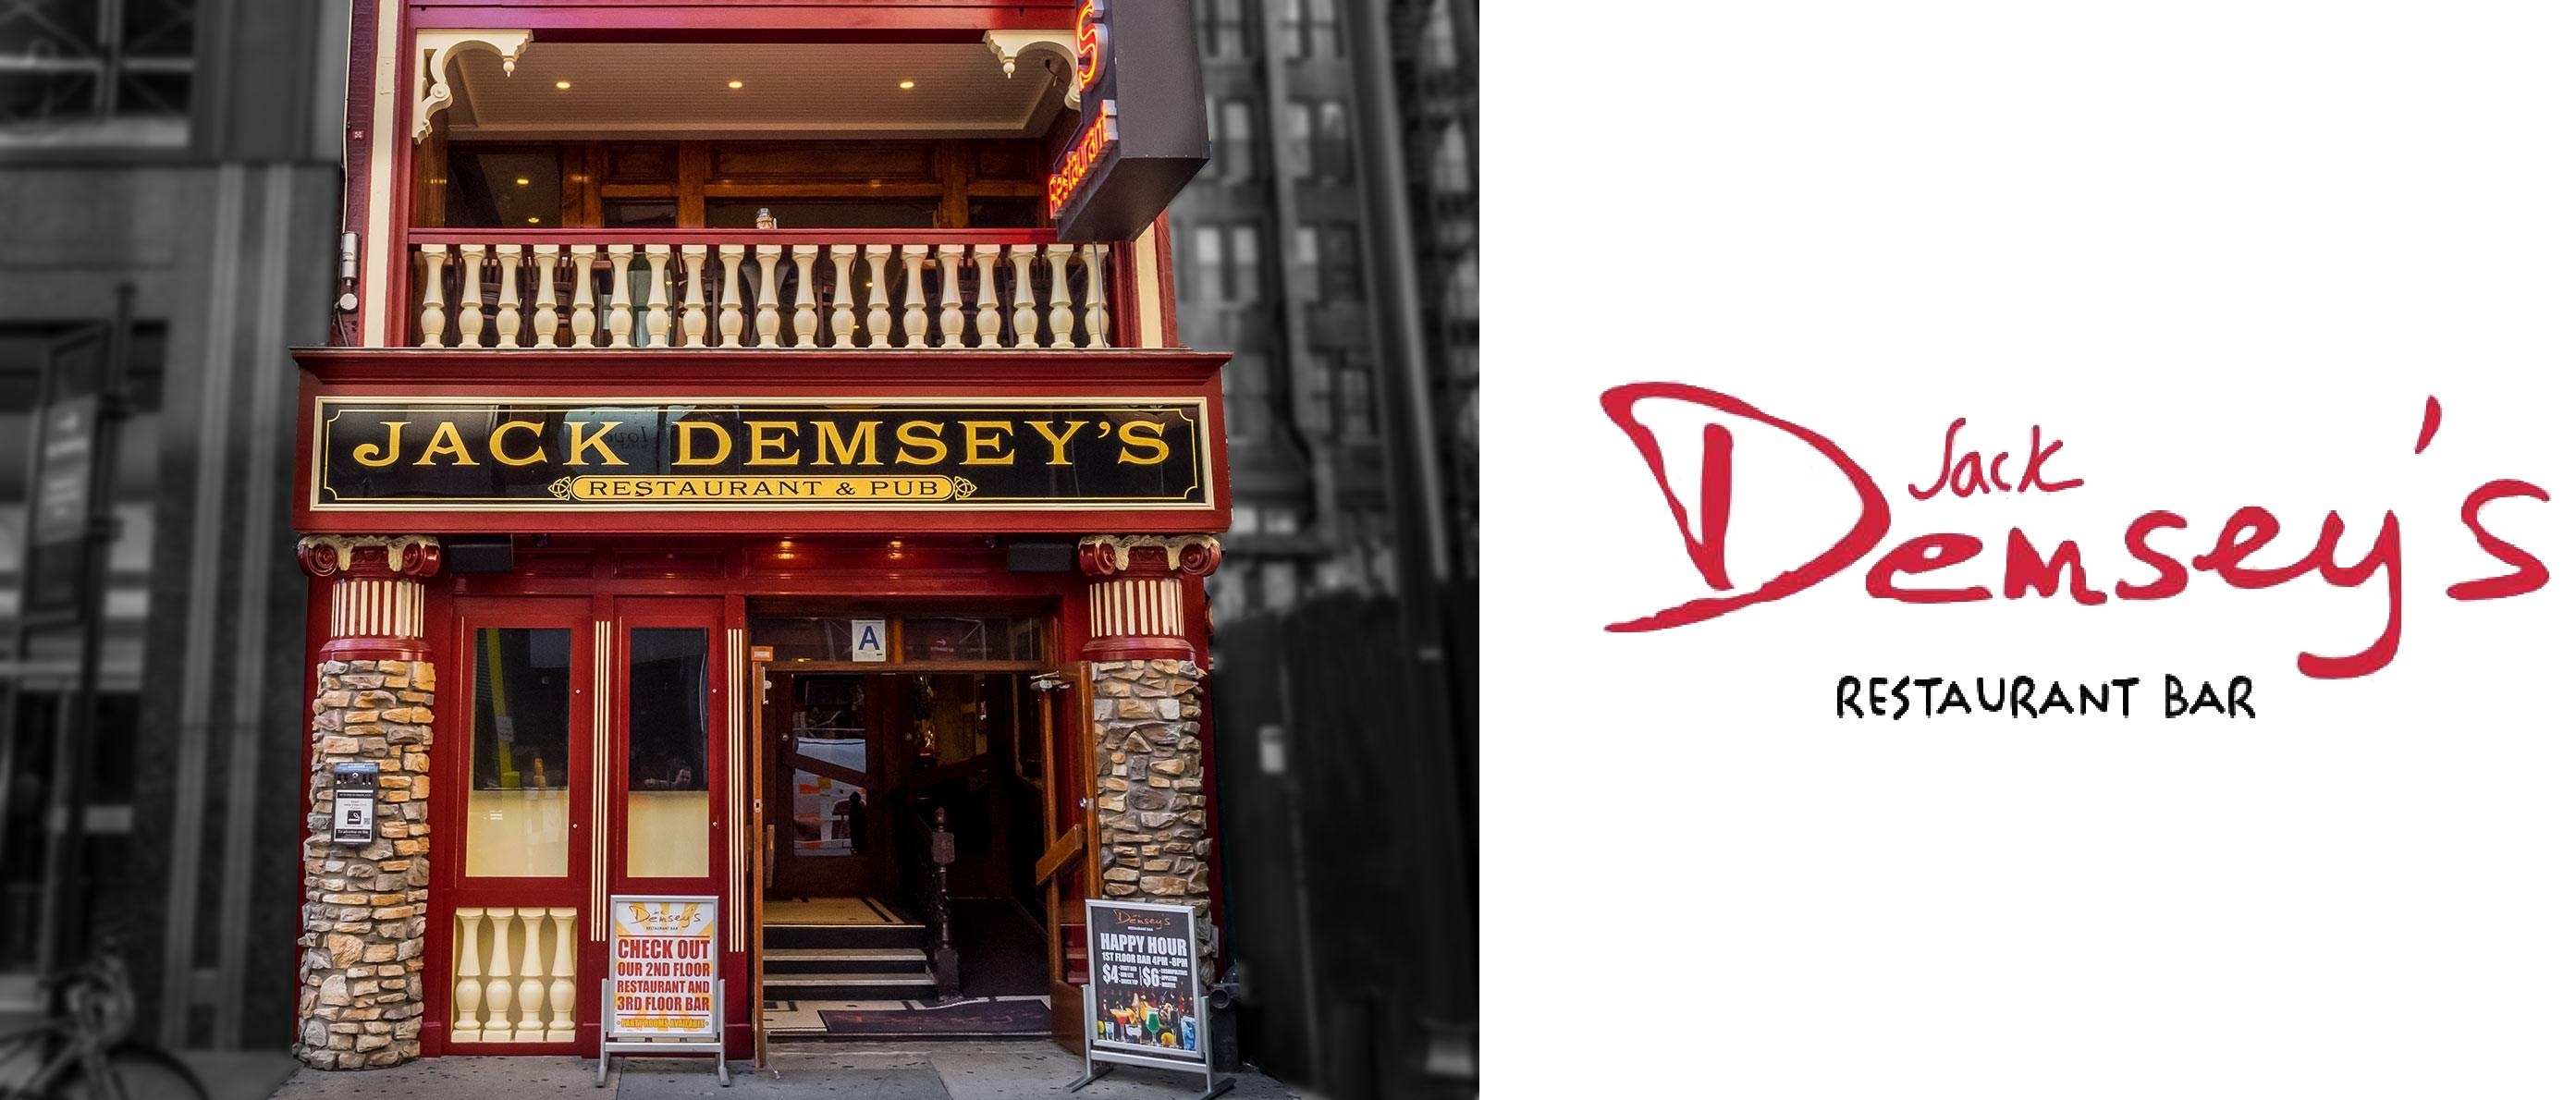 Jack Demsey's Restaurant & Pub photo